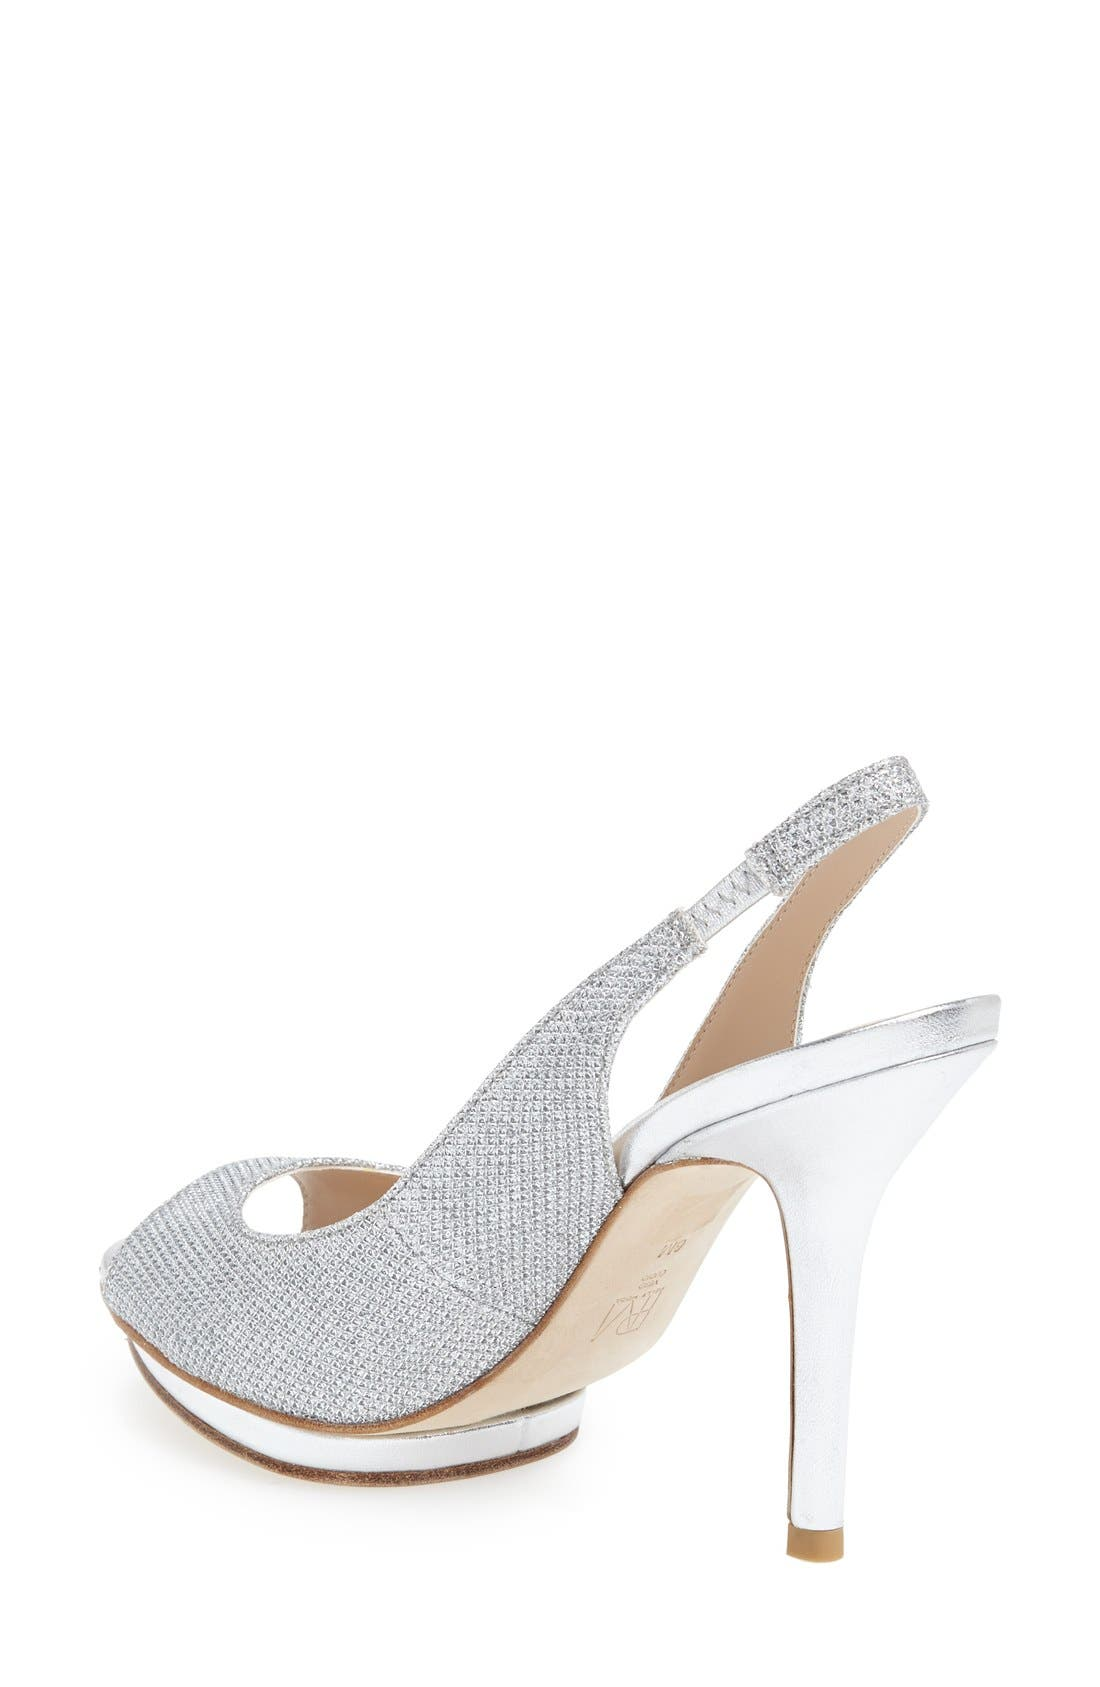 'Rivka' Open Toe Platform Slingback Sandal,                             Alternate thumbnail 7, color,